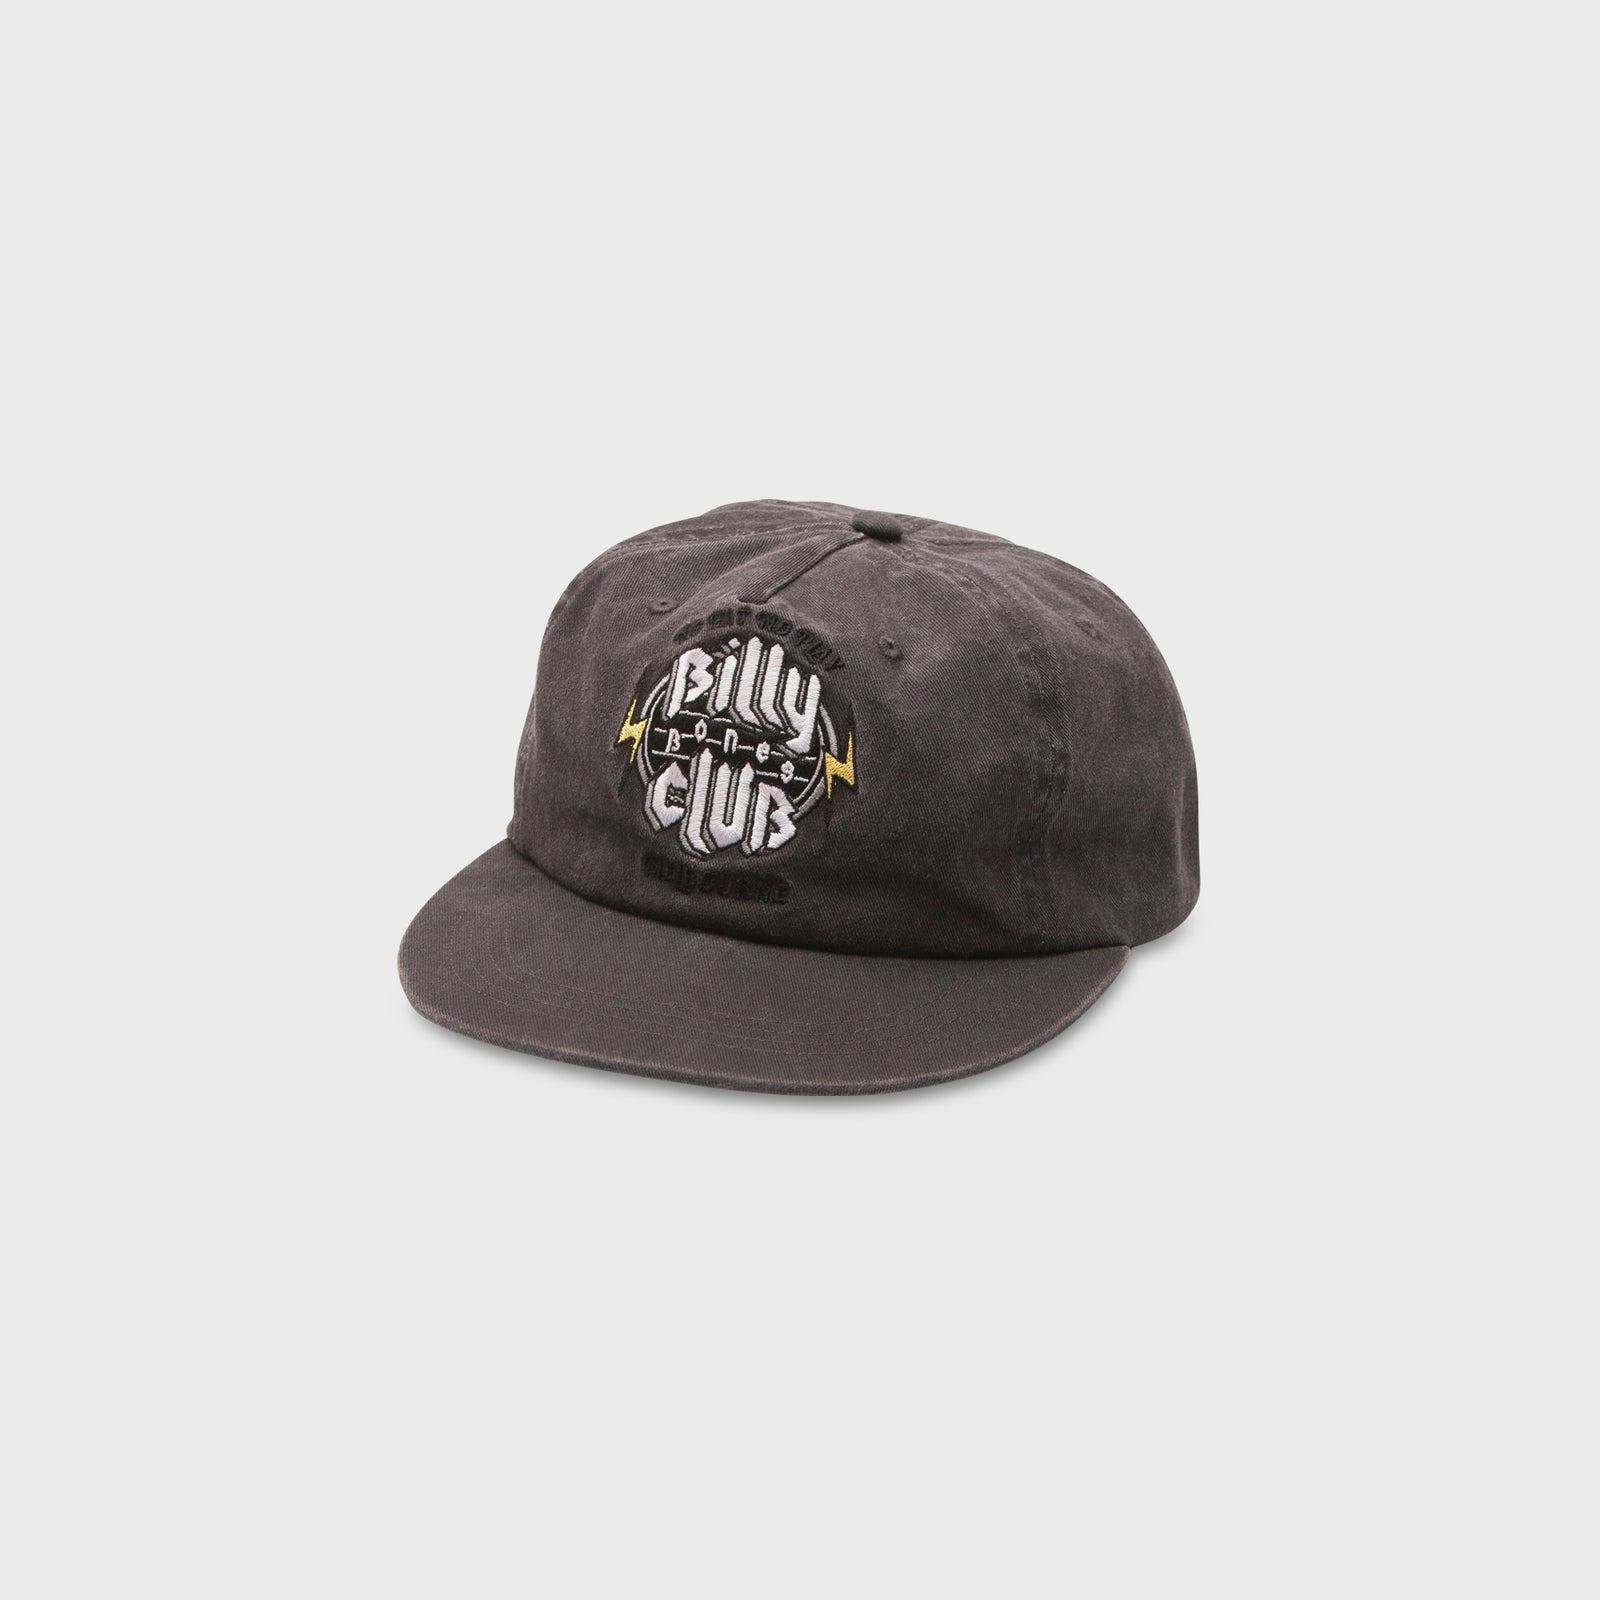 Bolt Cap - Vintage Wash